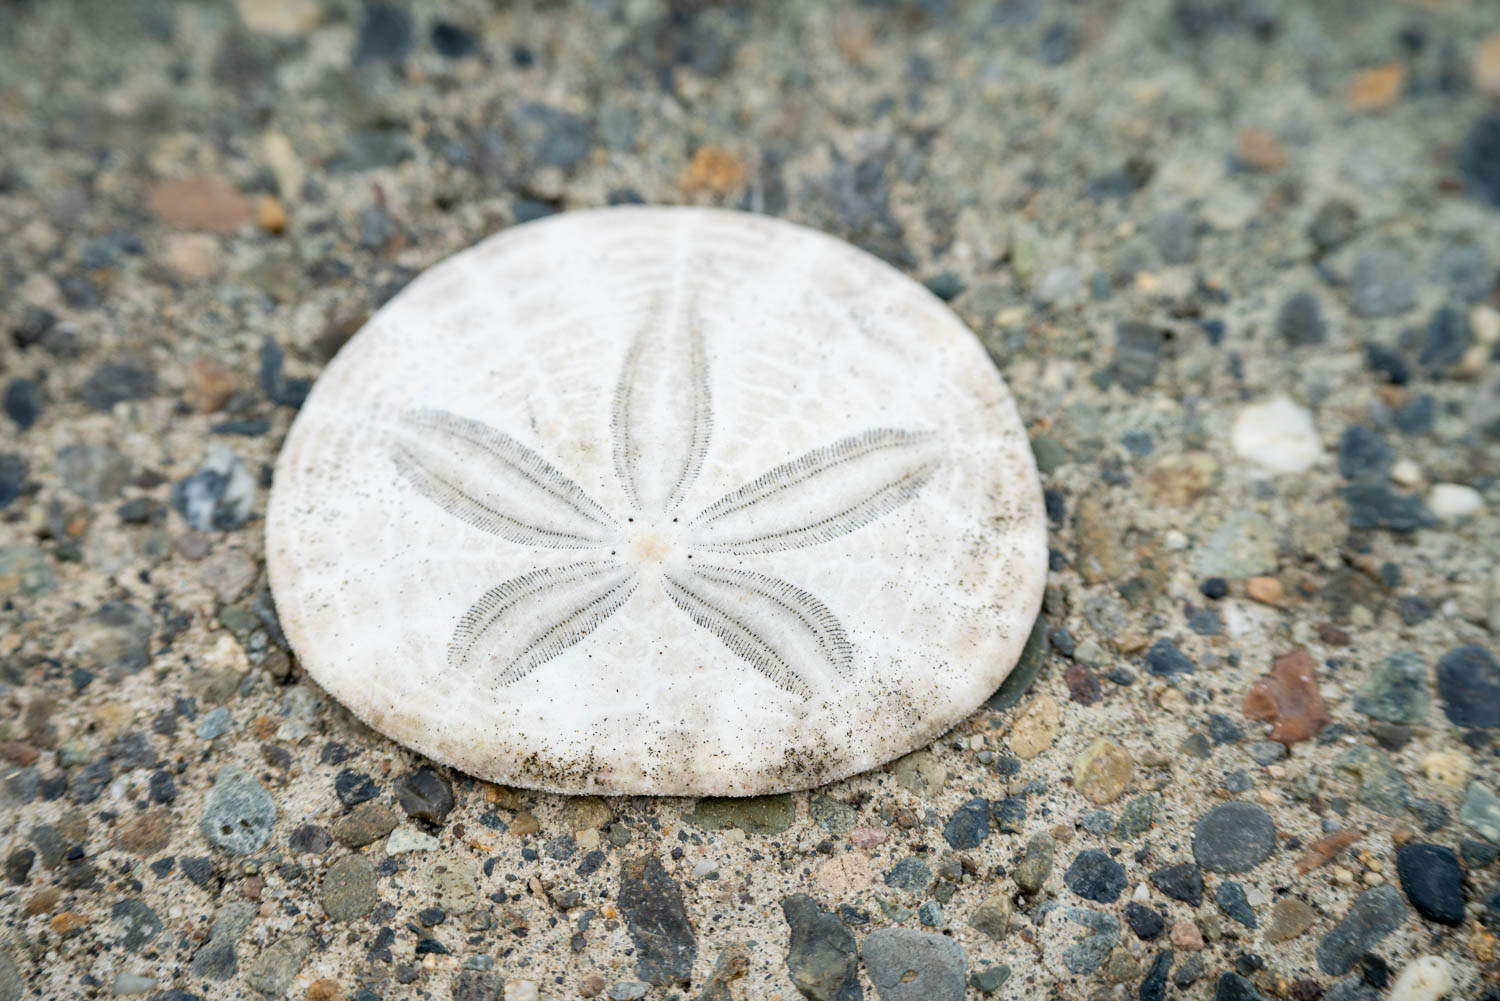 close-up of a sand dollar